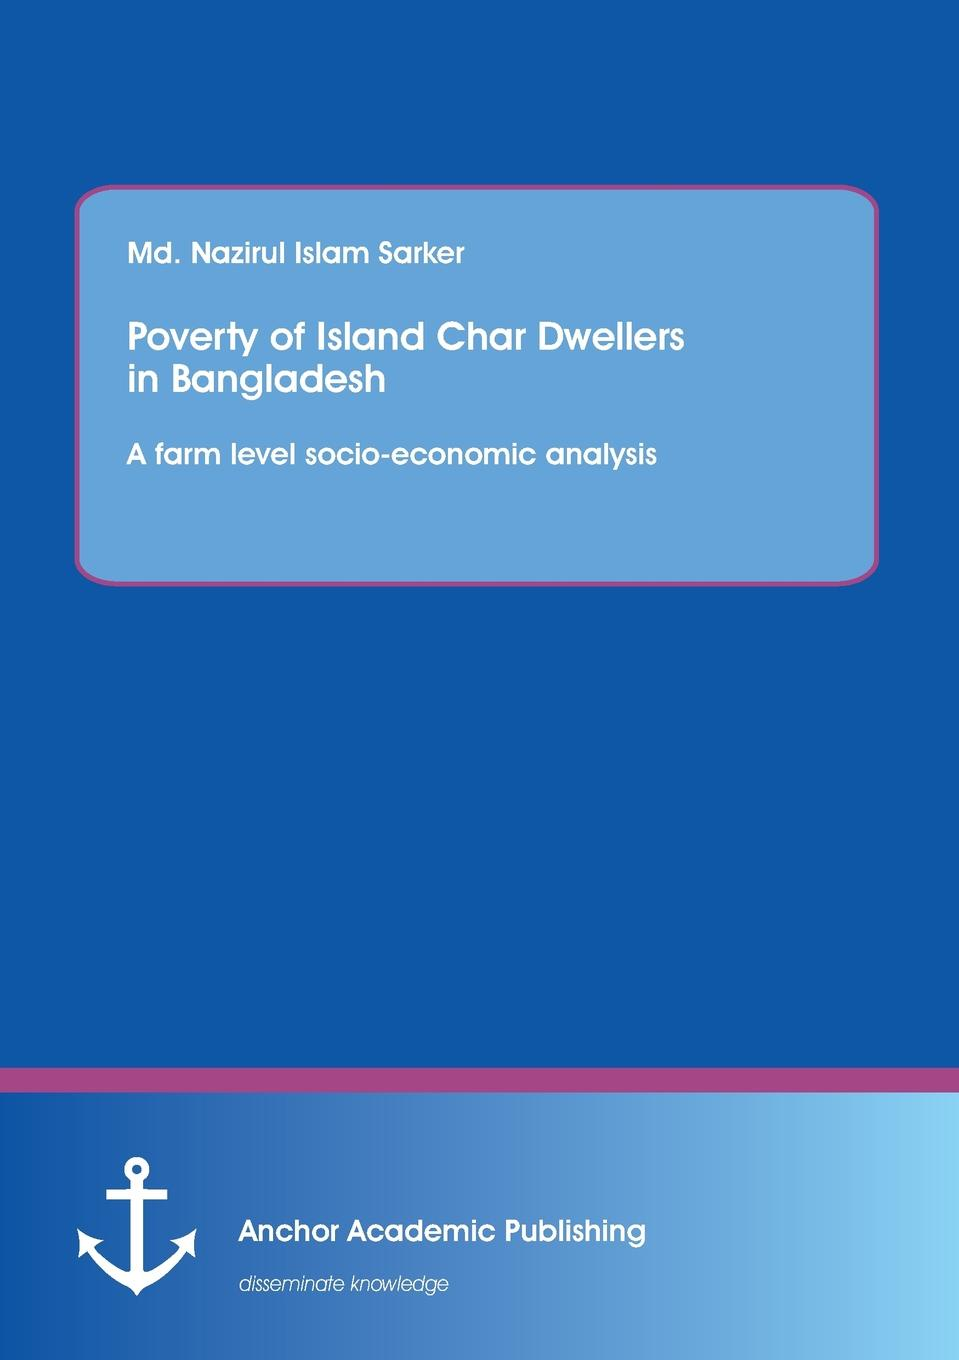 Md. Nazirul Islam Sarker Poverty of Island Char Dwellers in Bangladesh. A farm level socio-economic analysis micro perspectives on poverty alleviation in kenya